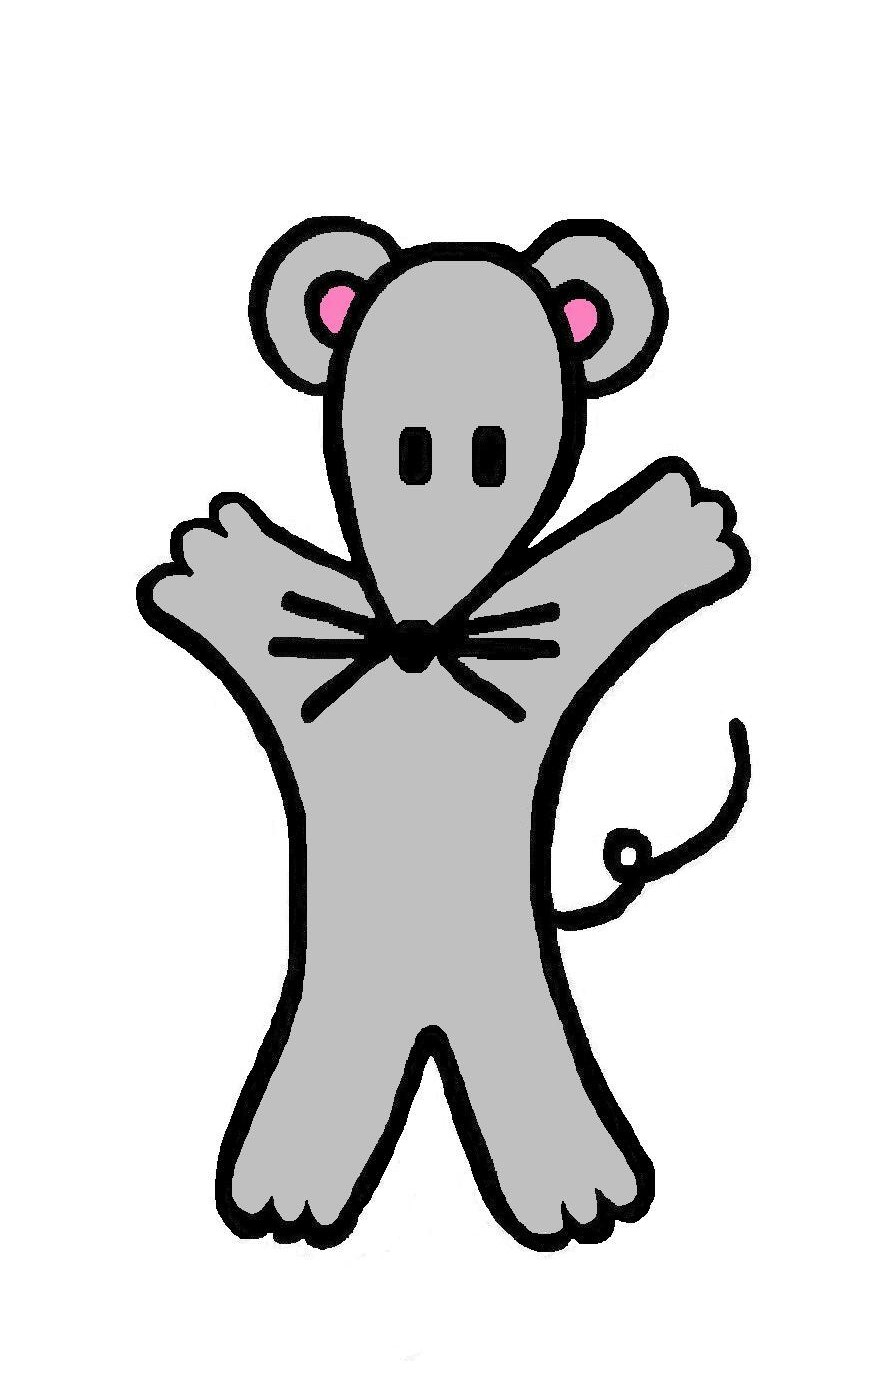 Marty Mouse.jpg?1398973616529